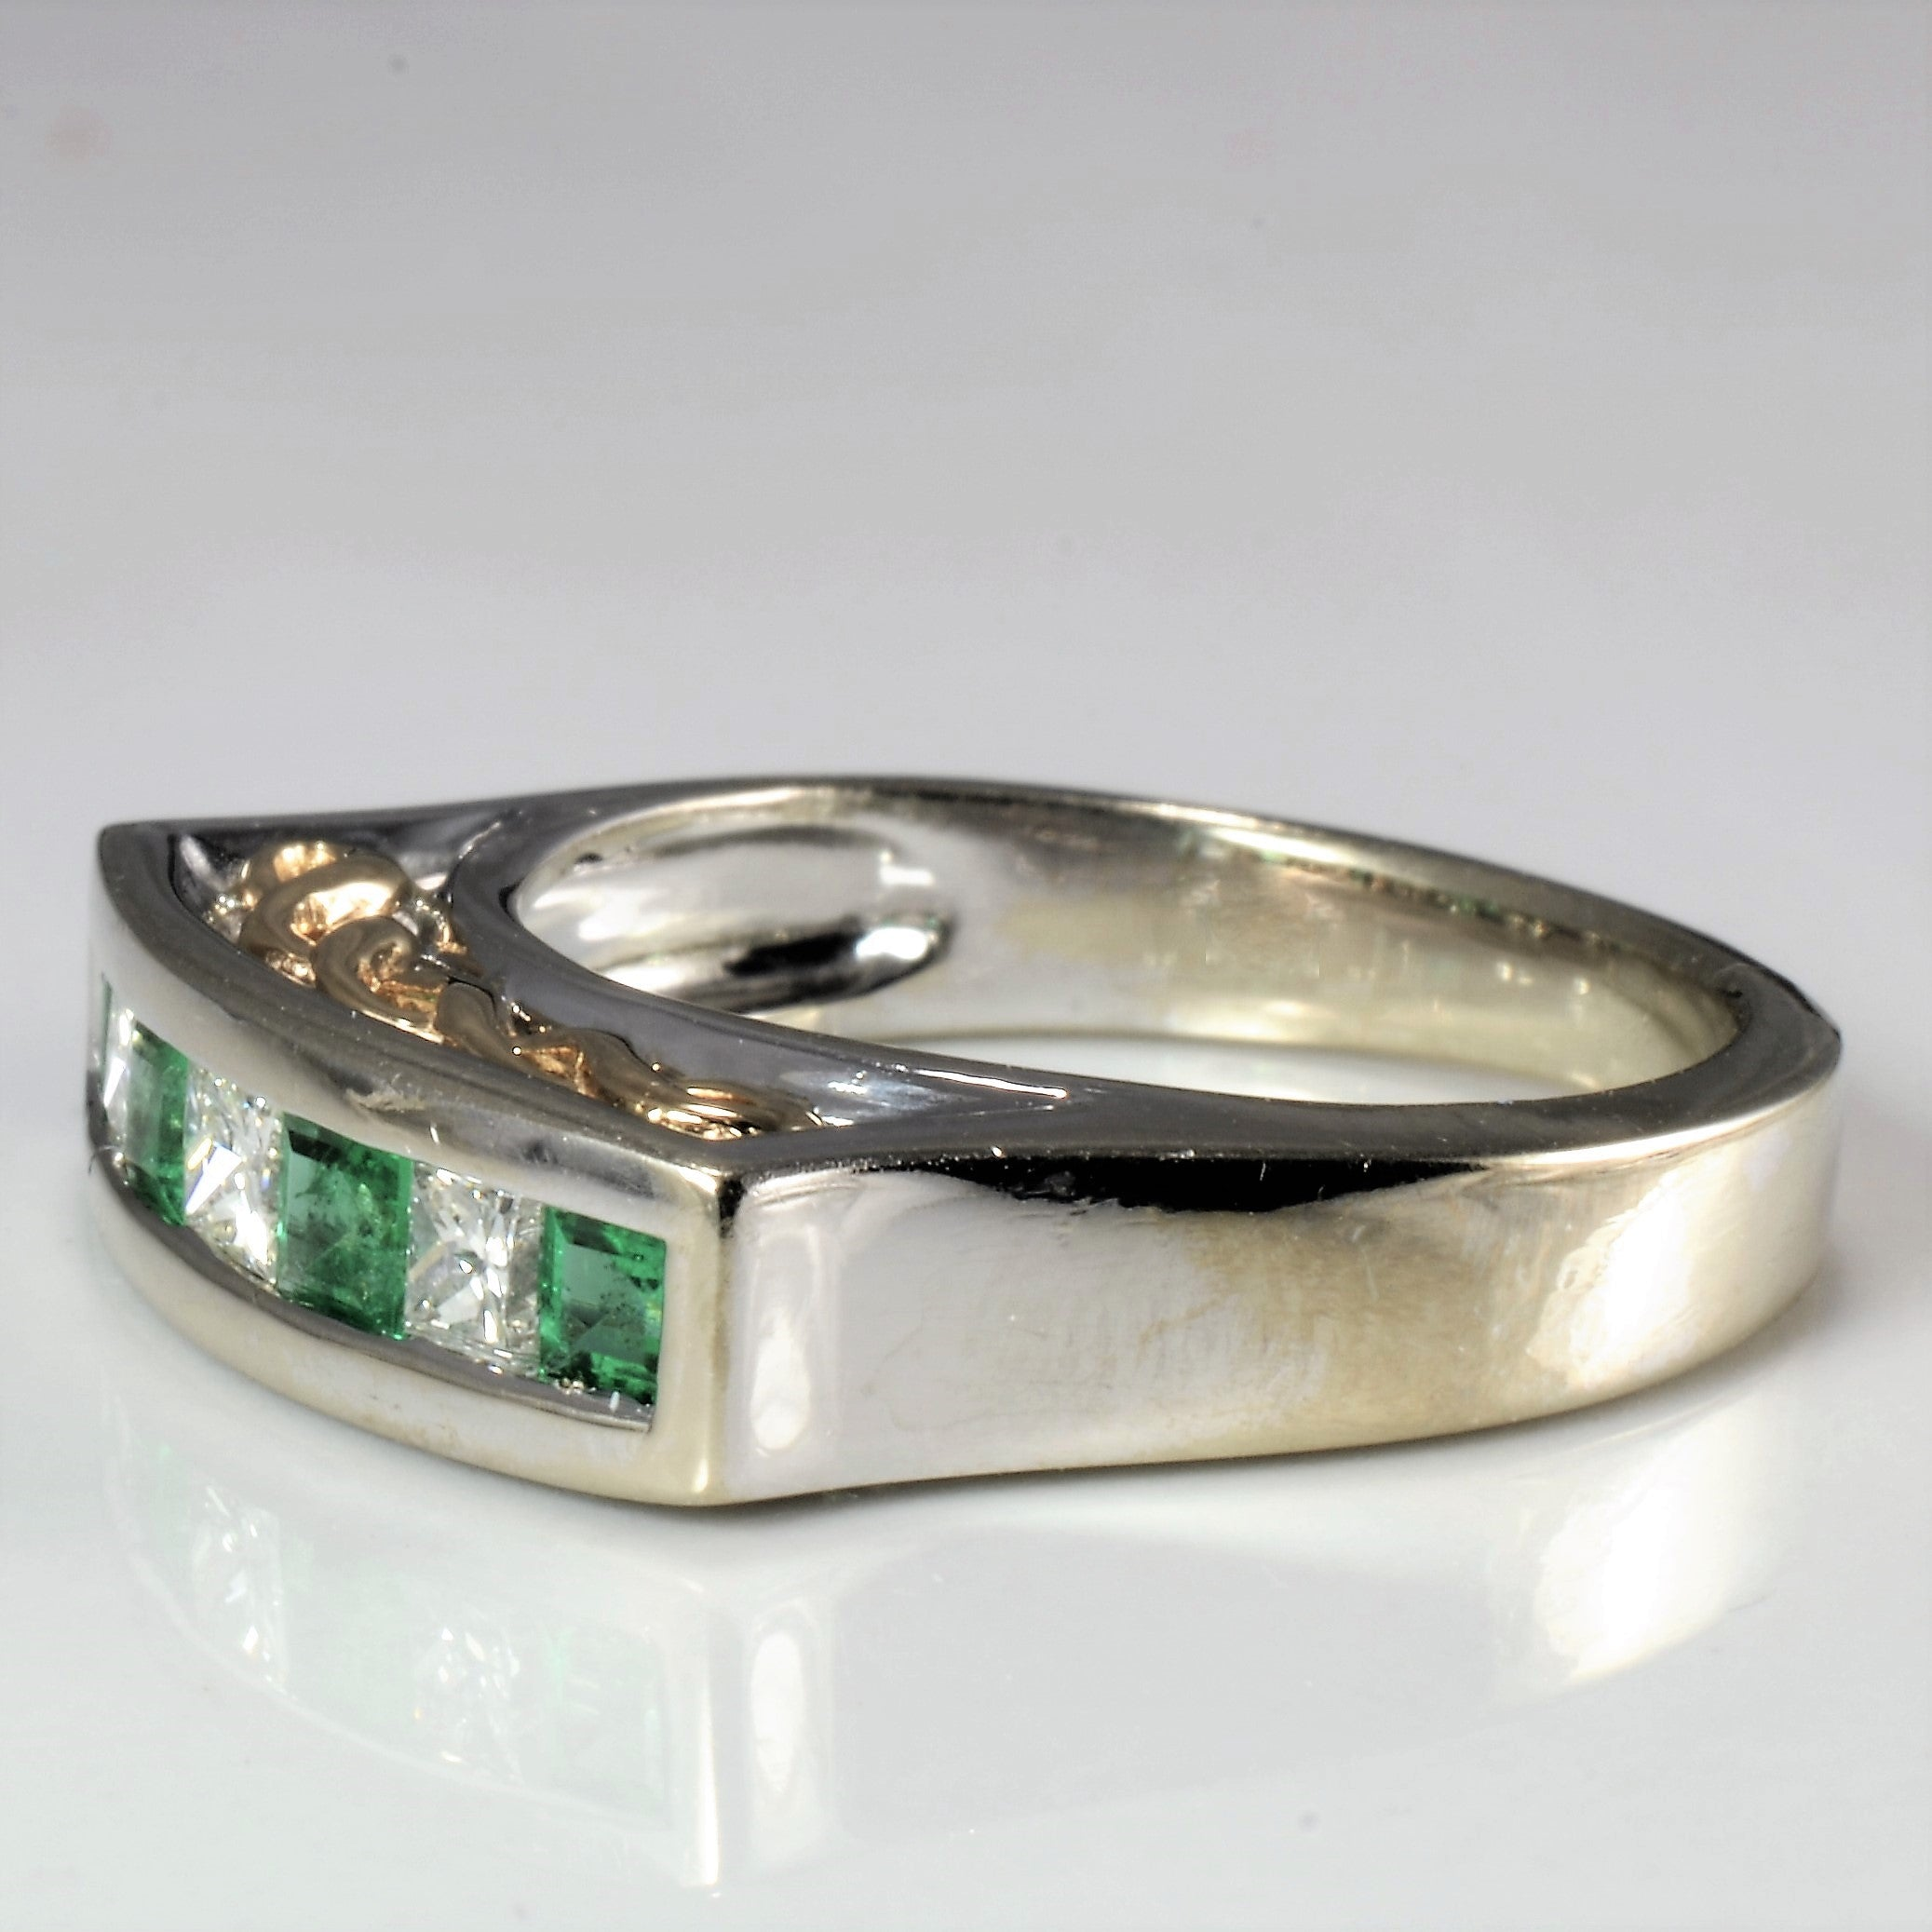 High Set Channel Emerald & Diamond Ring | 0.24 ctw, SZ 5.5 |